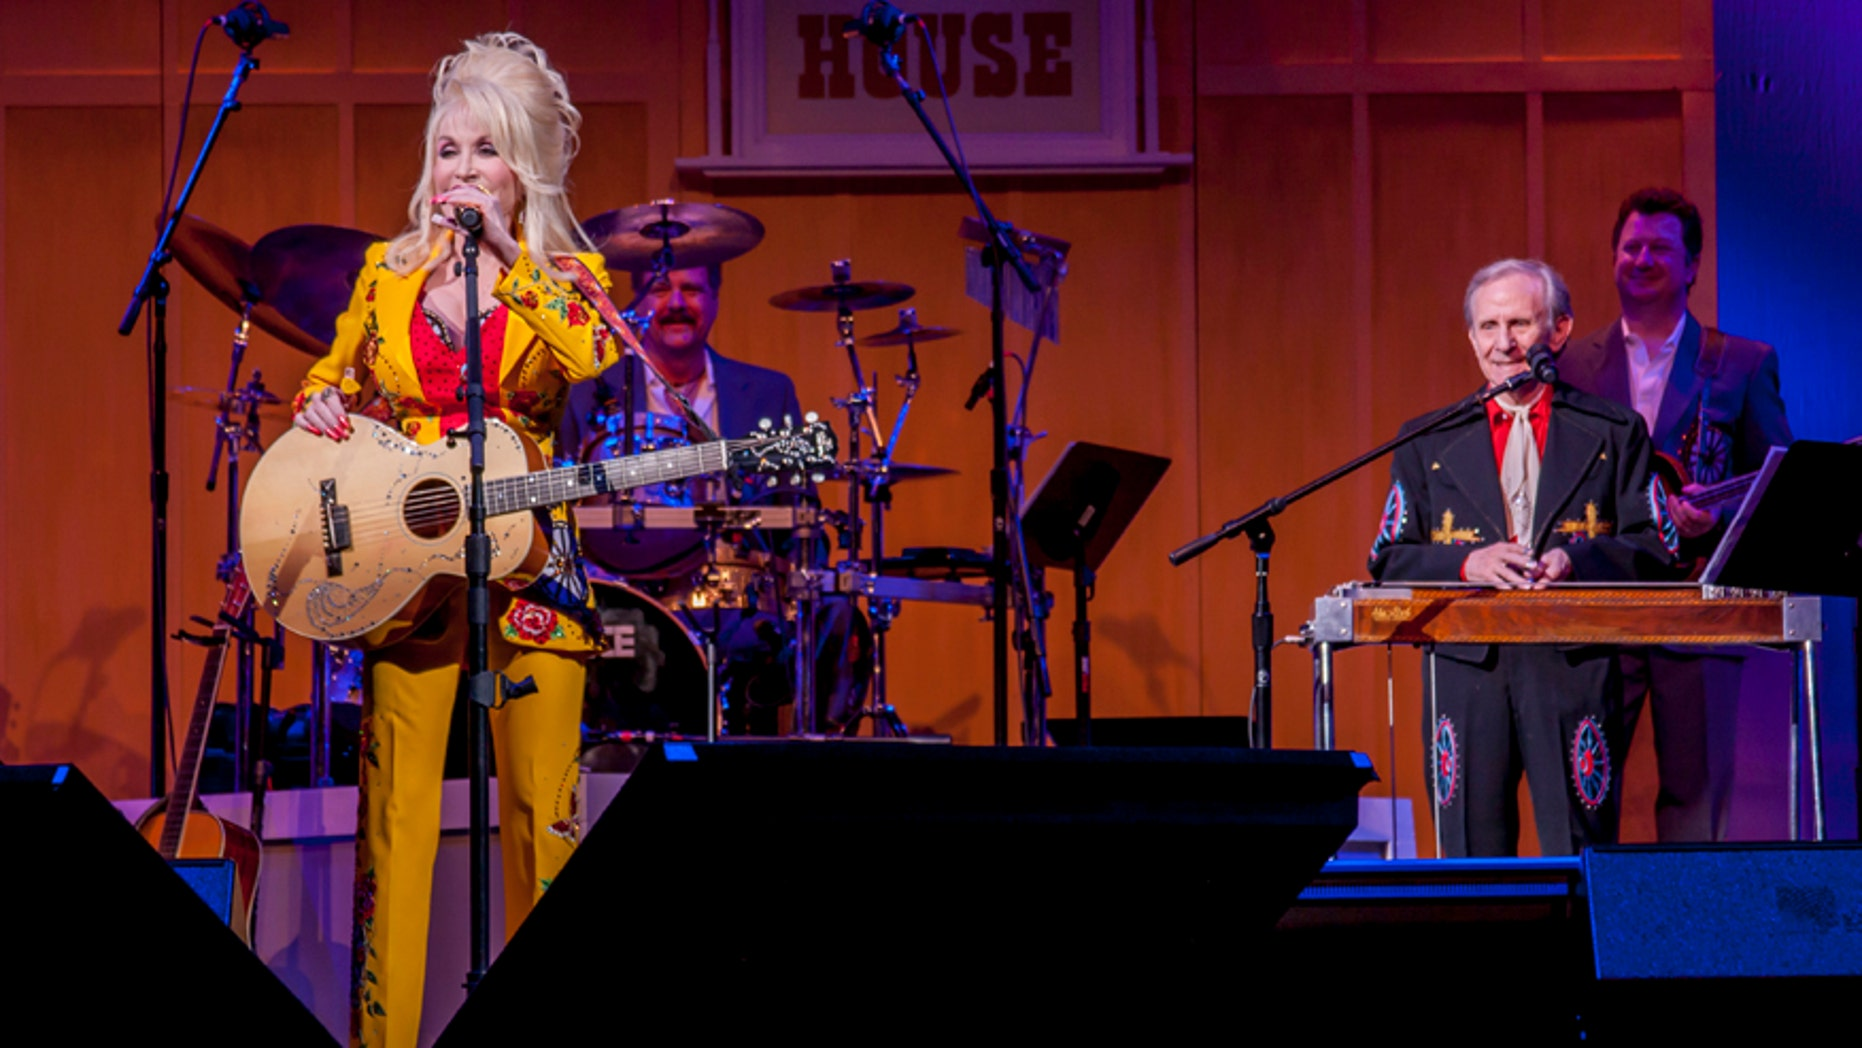 Dolly Parton and Don Warden perform at the Wagon House.